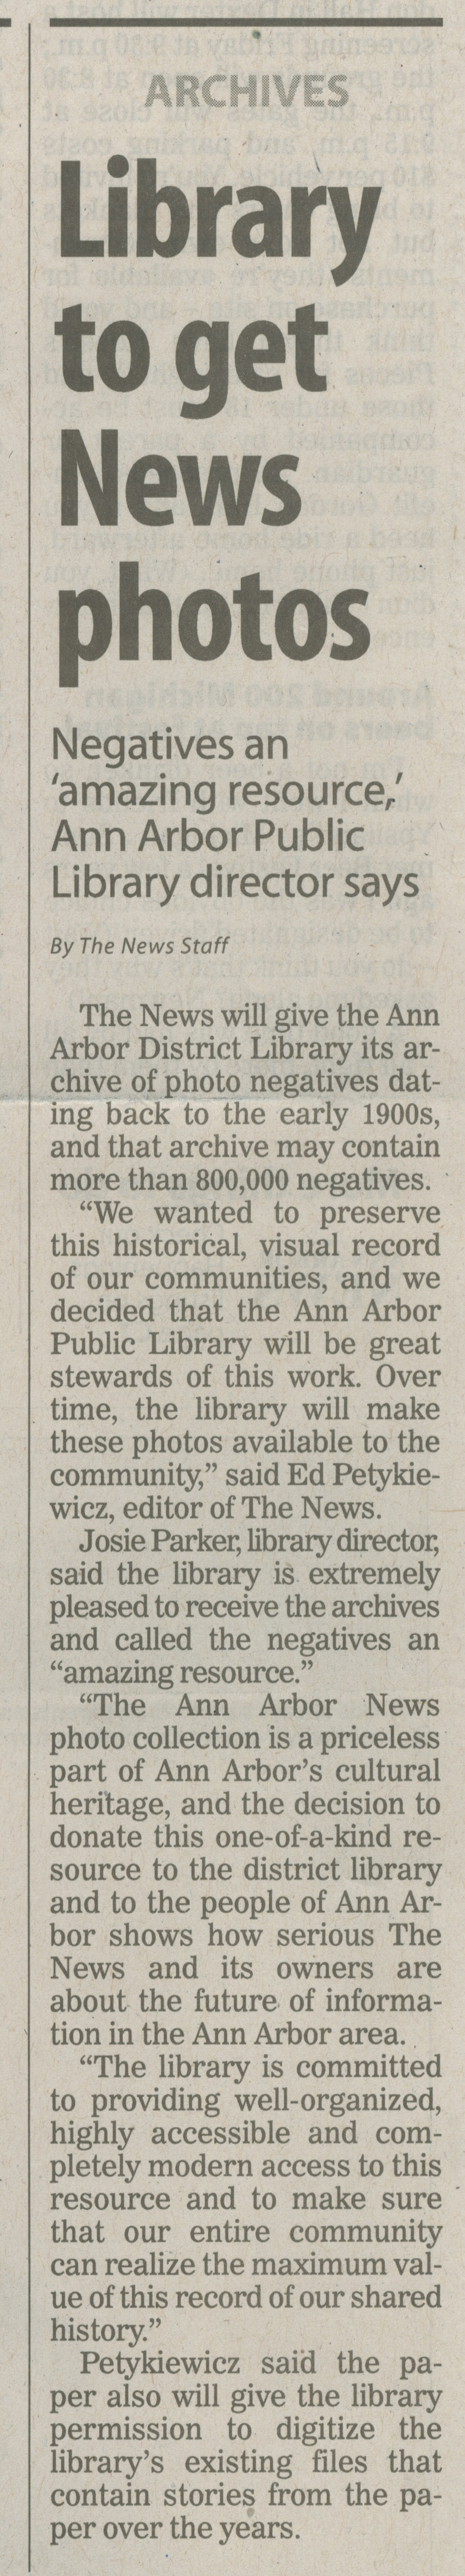 Library To Get News Photos image